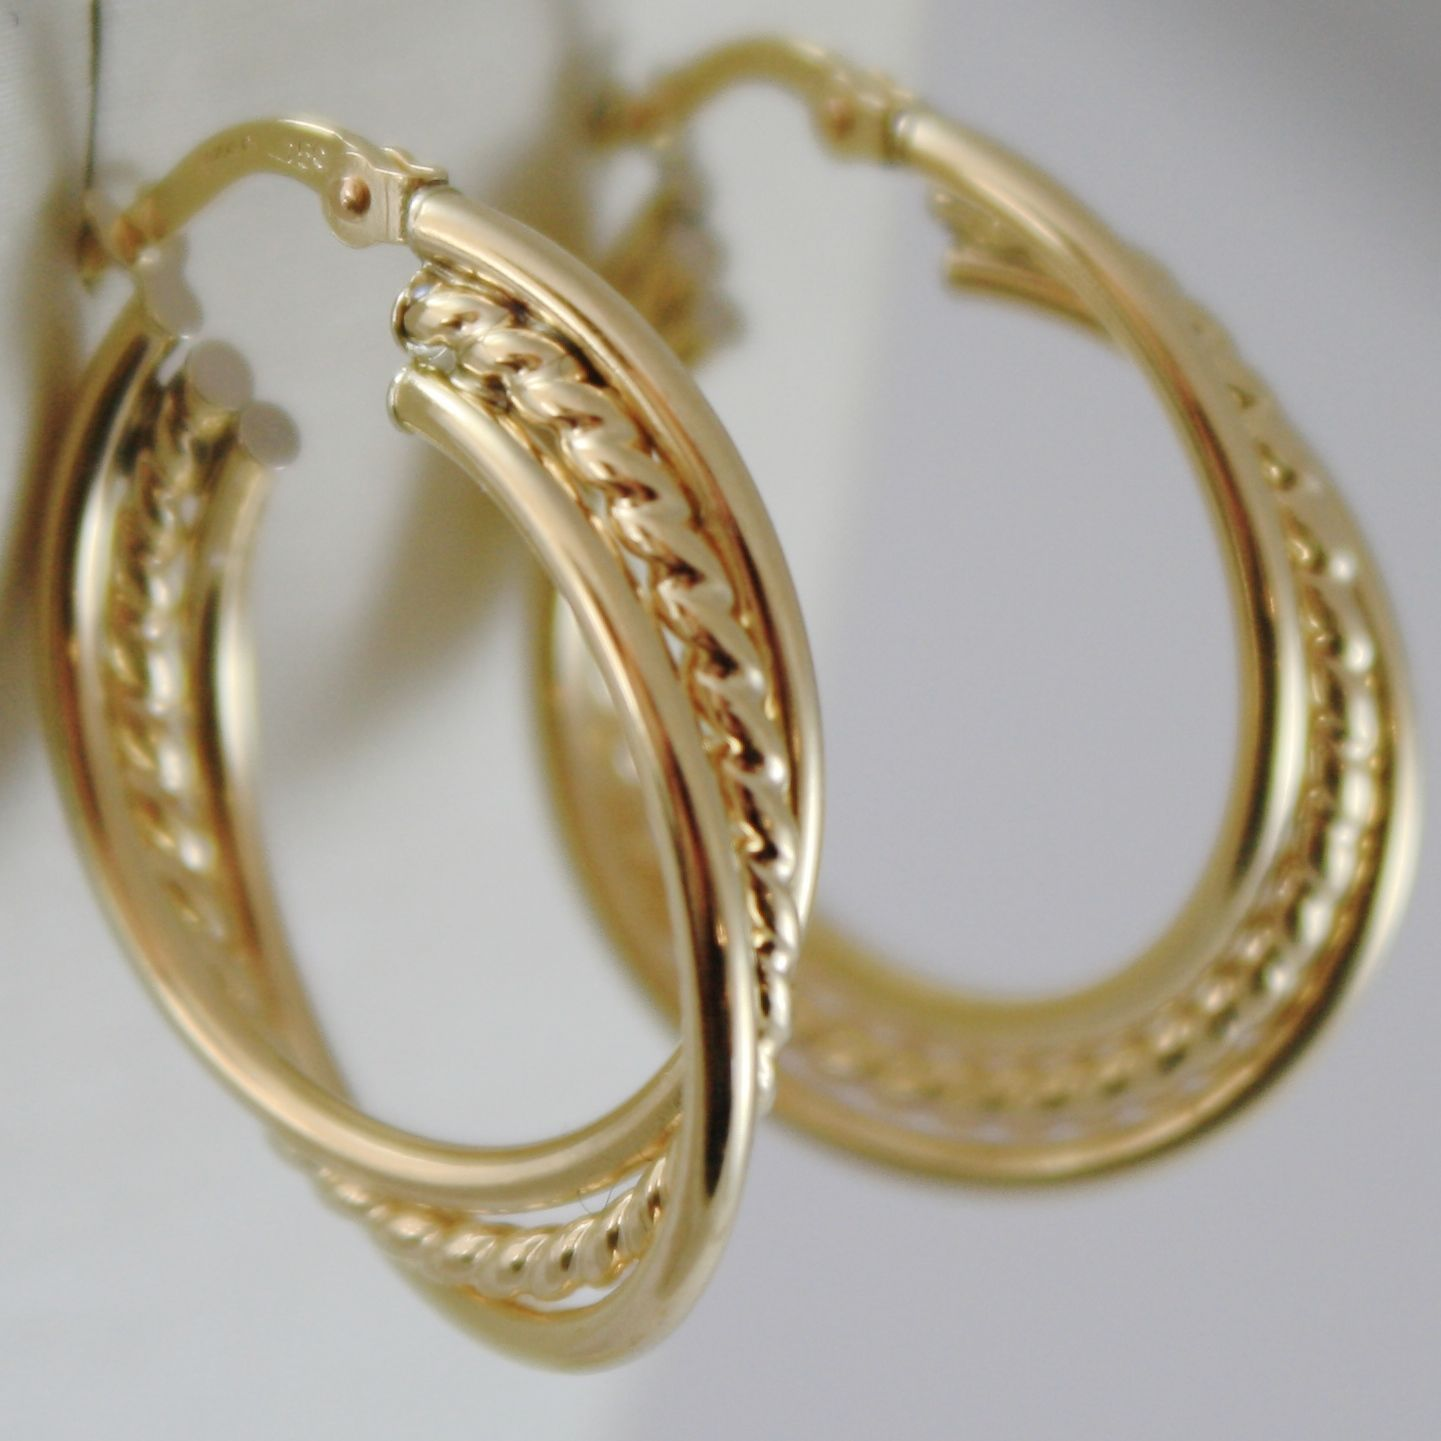 SOLID 18K YELLOW GOLD CIRCLE, HOOP TWISTED WORKED EARRINGS, MADE IN ITALY